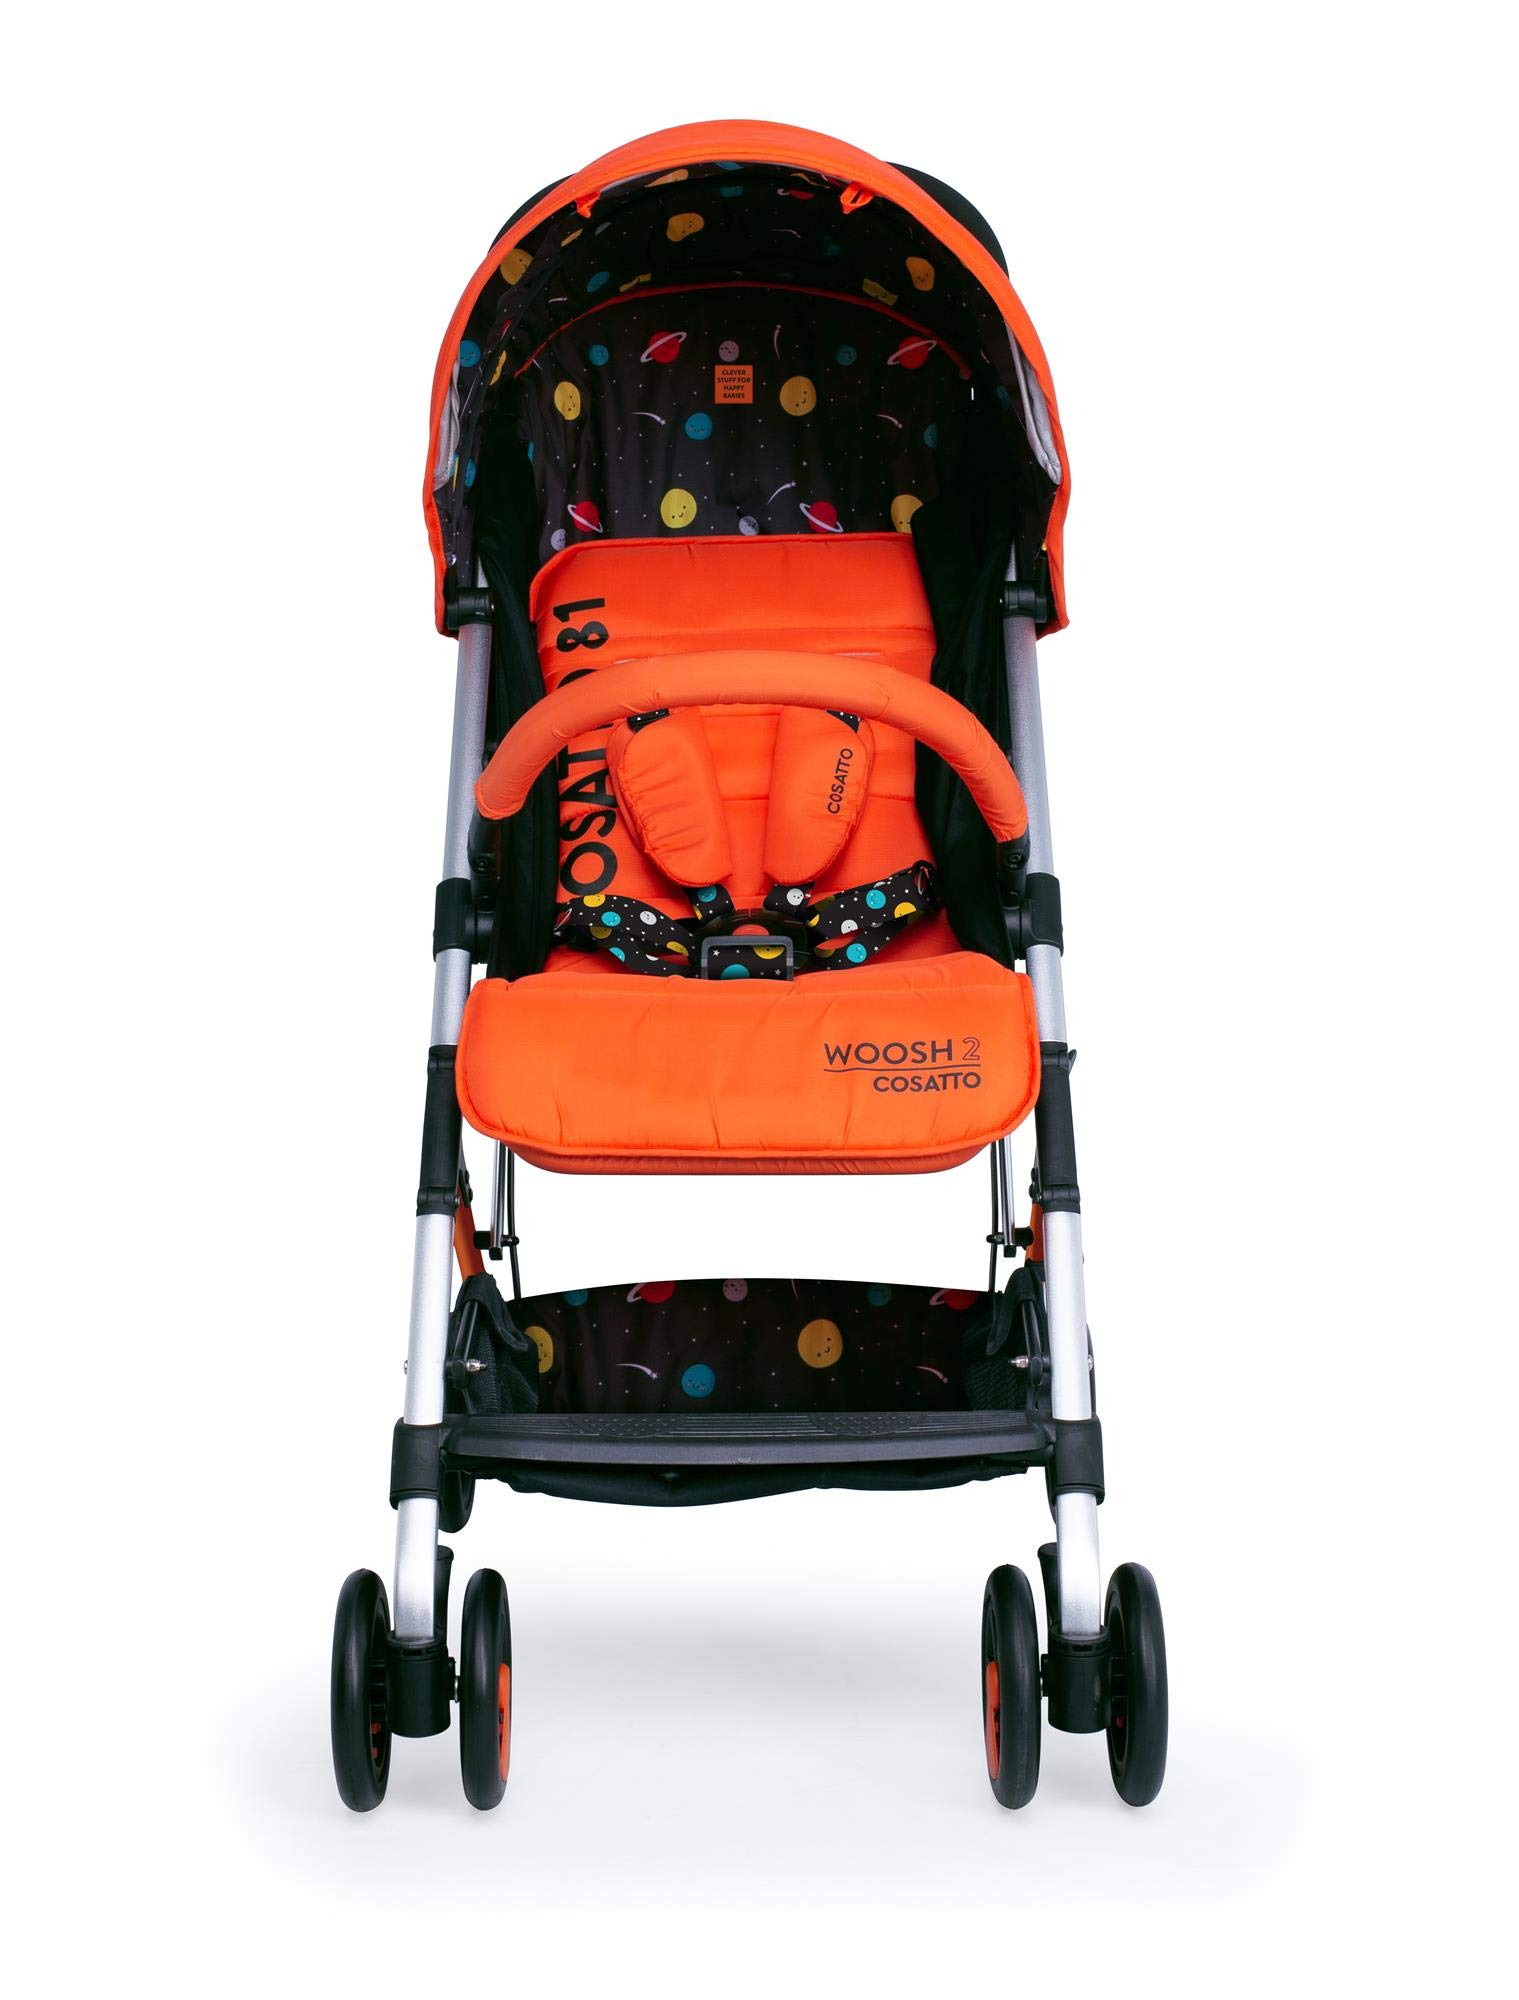 Cosatto Woosh 2 Stroller Spaceman with raincover and Bumper bar Birth to 25kg Cosatto INCLUDES: The pushchair itself, Raincover, Bumper bar,4 year guarantee(UK and Ireland only) Suitable from birth to max weight of 25kg. Lets your toddler use it for even longer. Lightweight, sturdy aluminium frame. Newborn recline. Lightweight waterproof Ripstop fabric on seat. Lockable swivel front wheels for quick manoeuvres Roomy seat for extra comfort. Removable bumper bar for extra support. Magic bell. Front & rear suspension for a smooth ride. 4